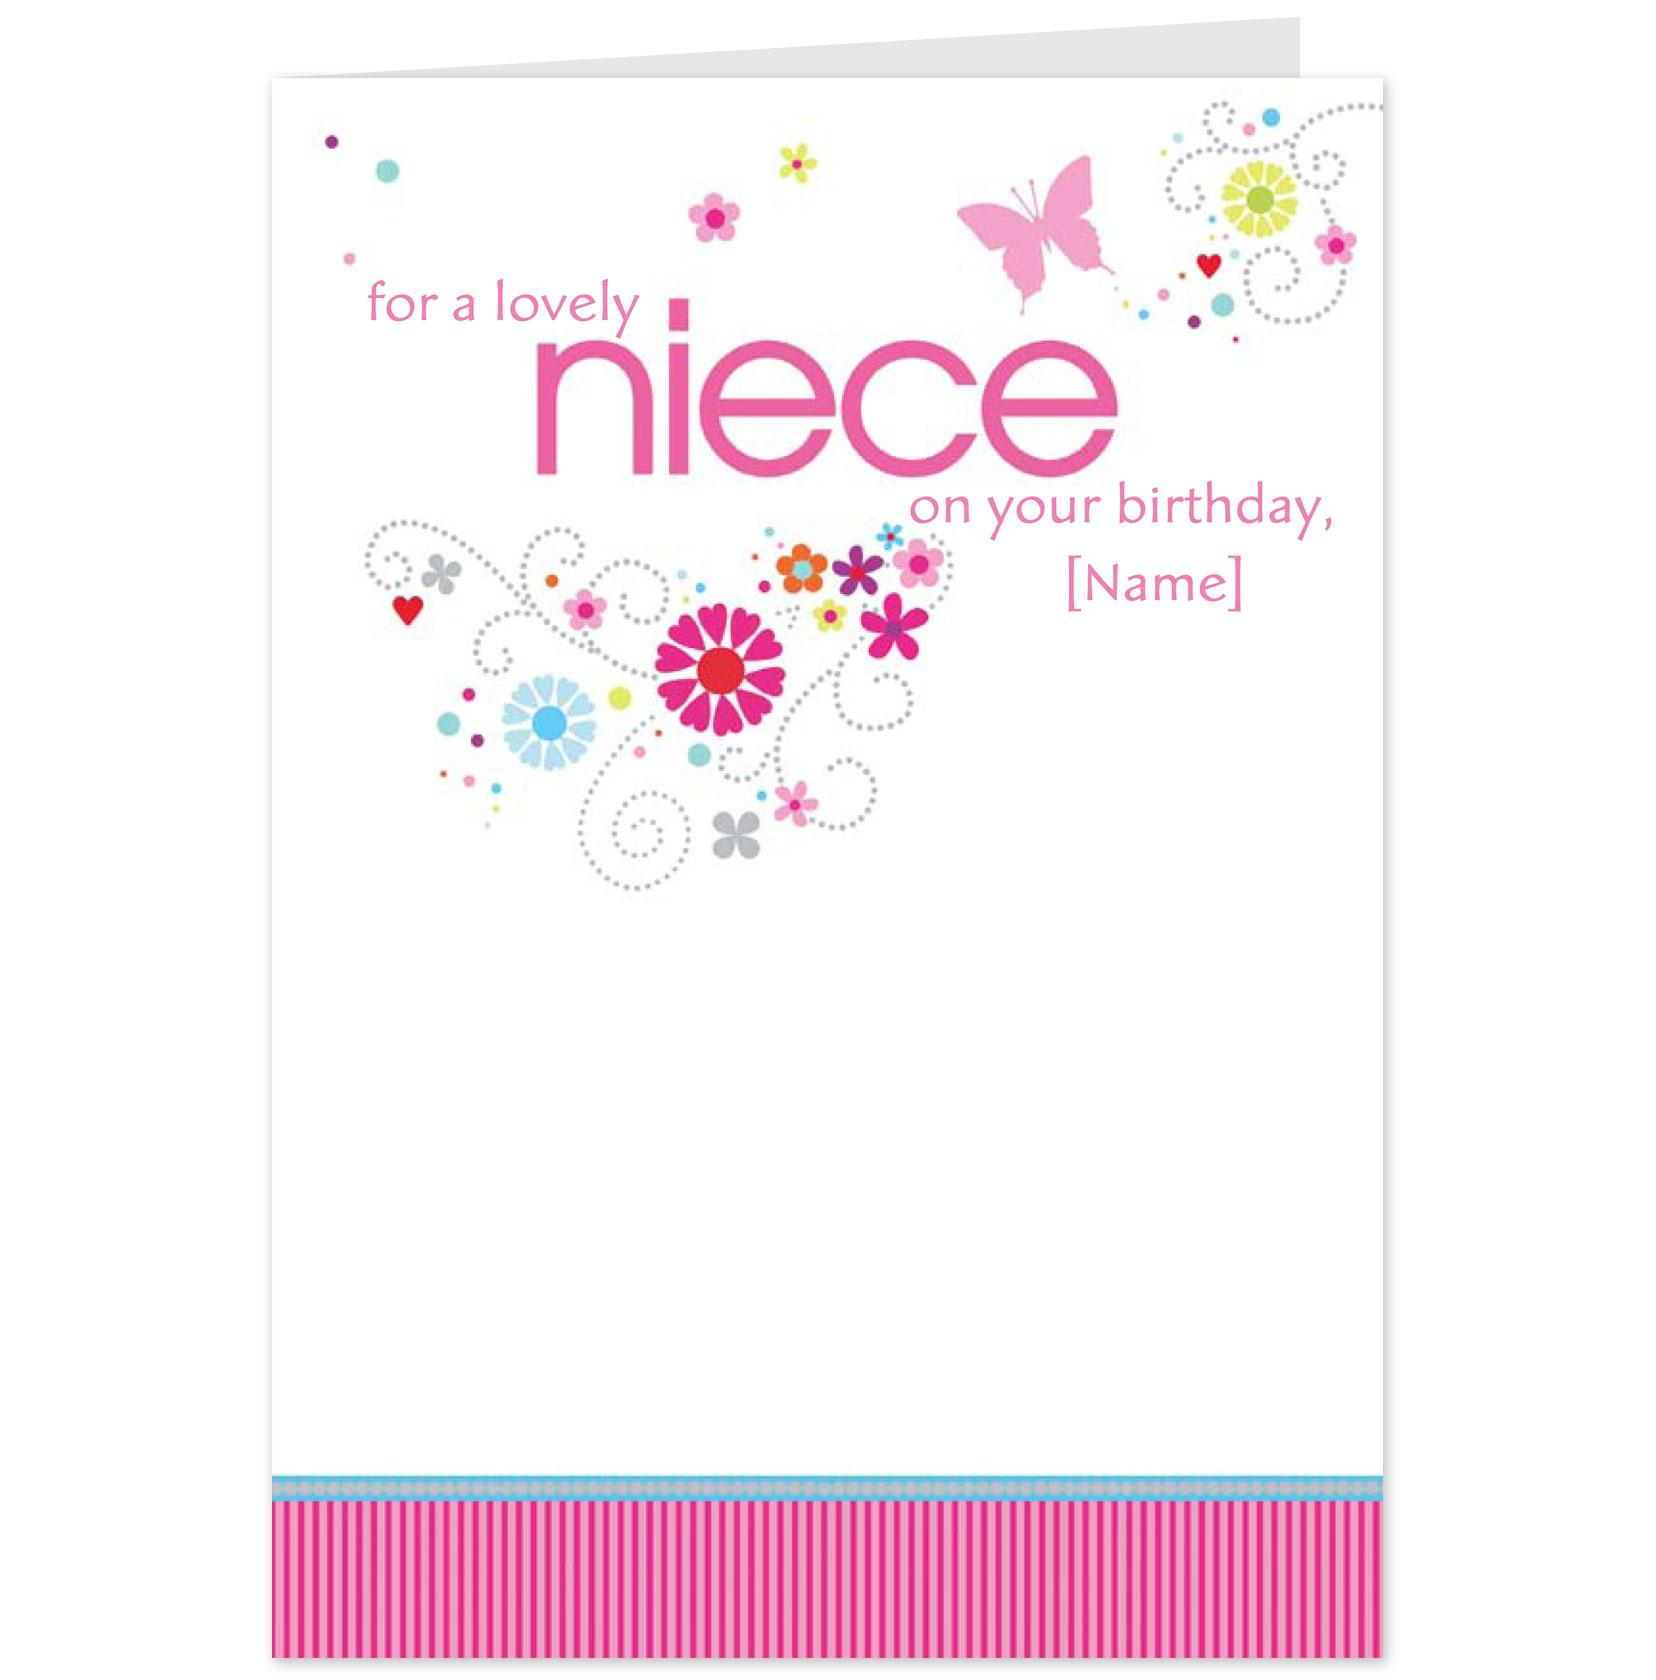 Birthday Quotes For Nieces: Happy Birthday Niece Quotes. QuotesGram